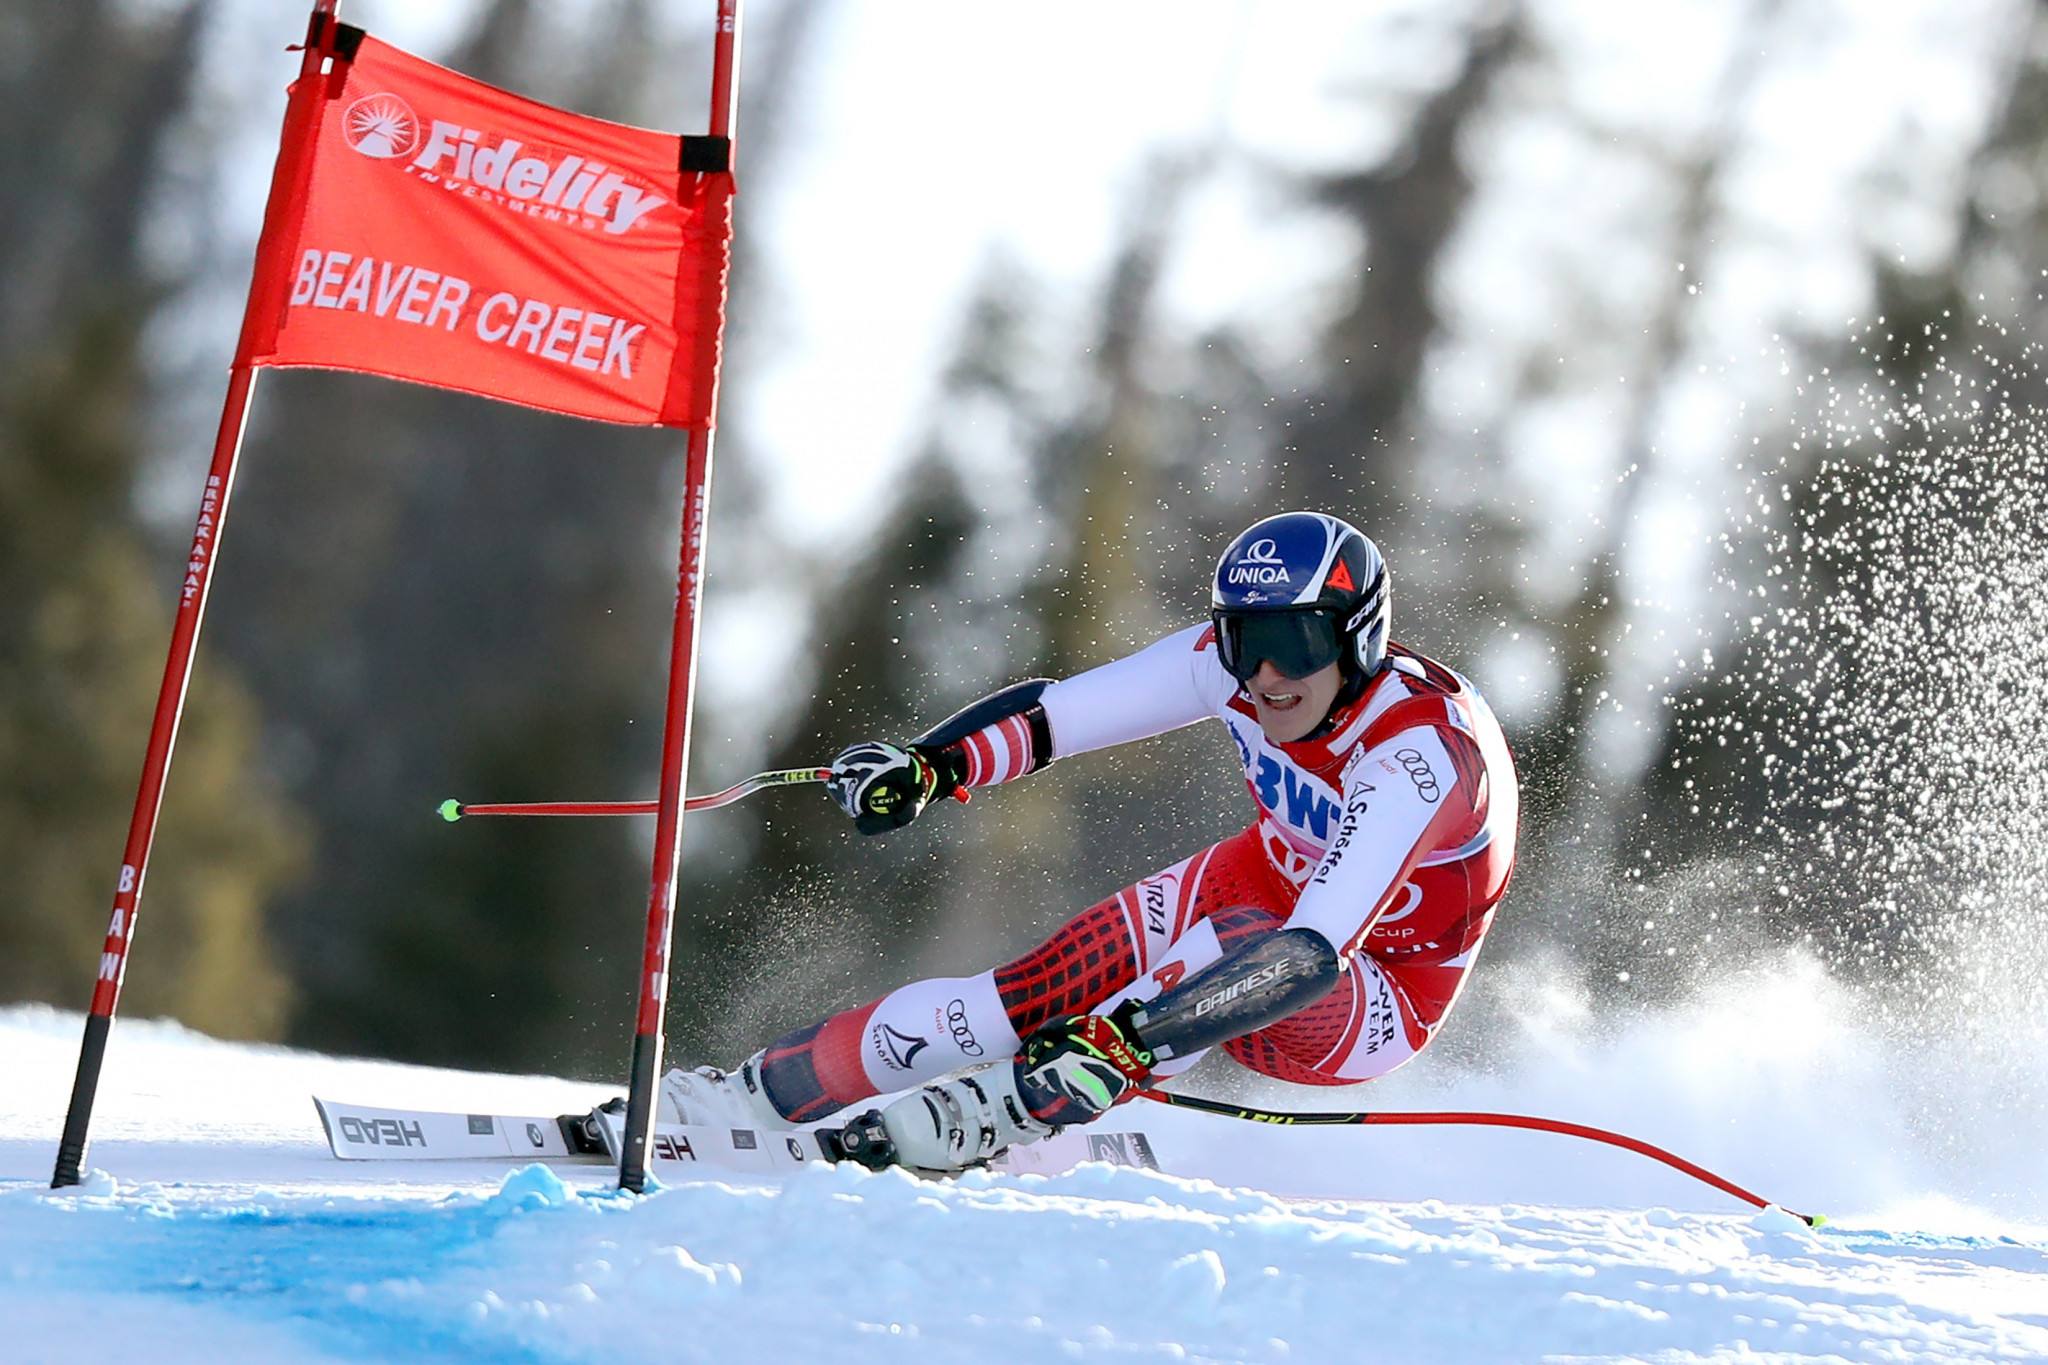 Olympic champion, Matthias Mayer of Austria, finished third in Beaver Creek ©Getty Images